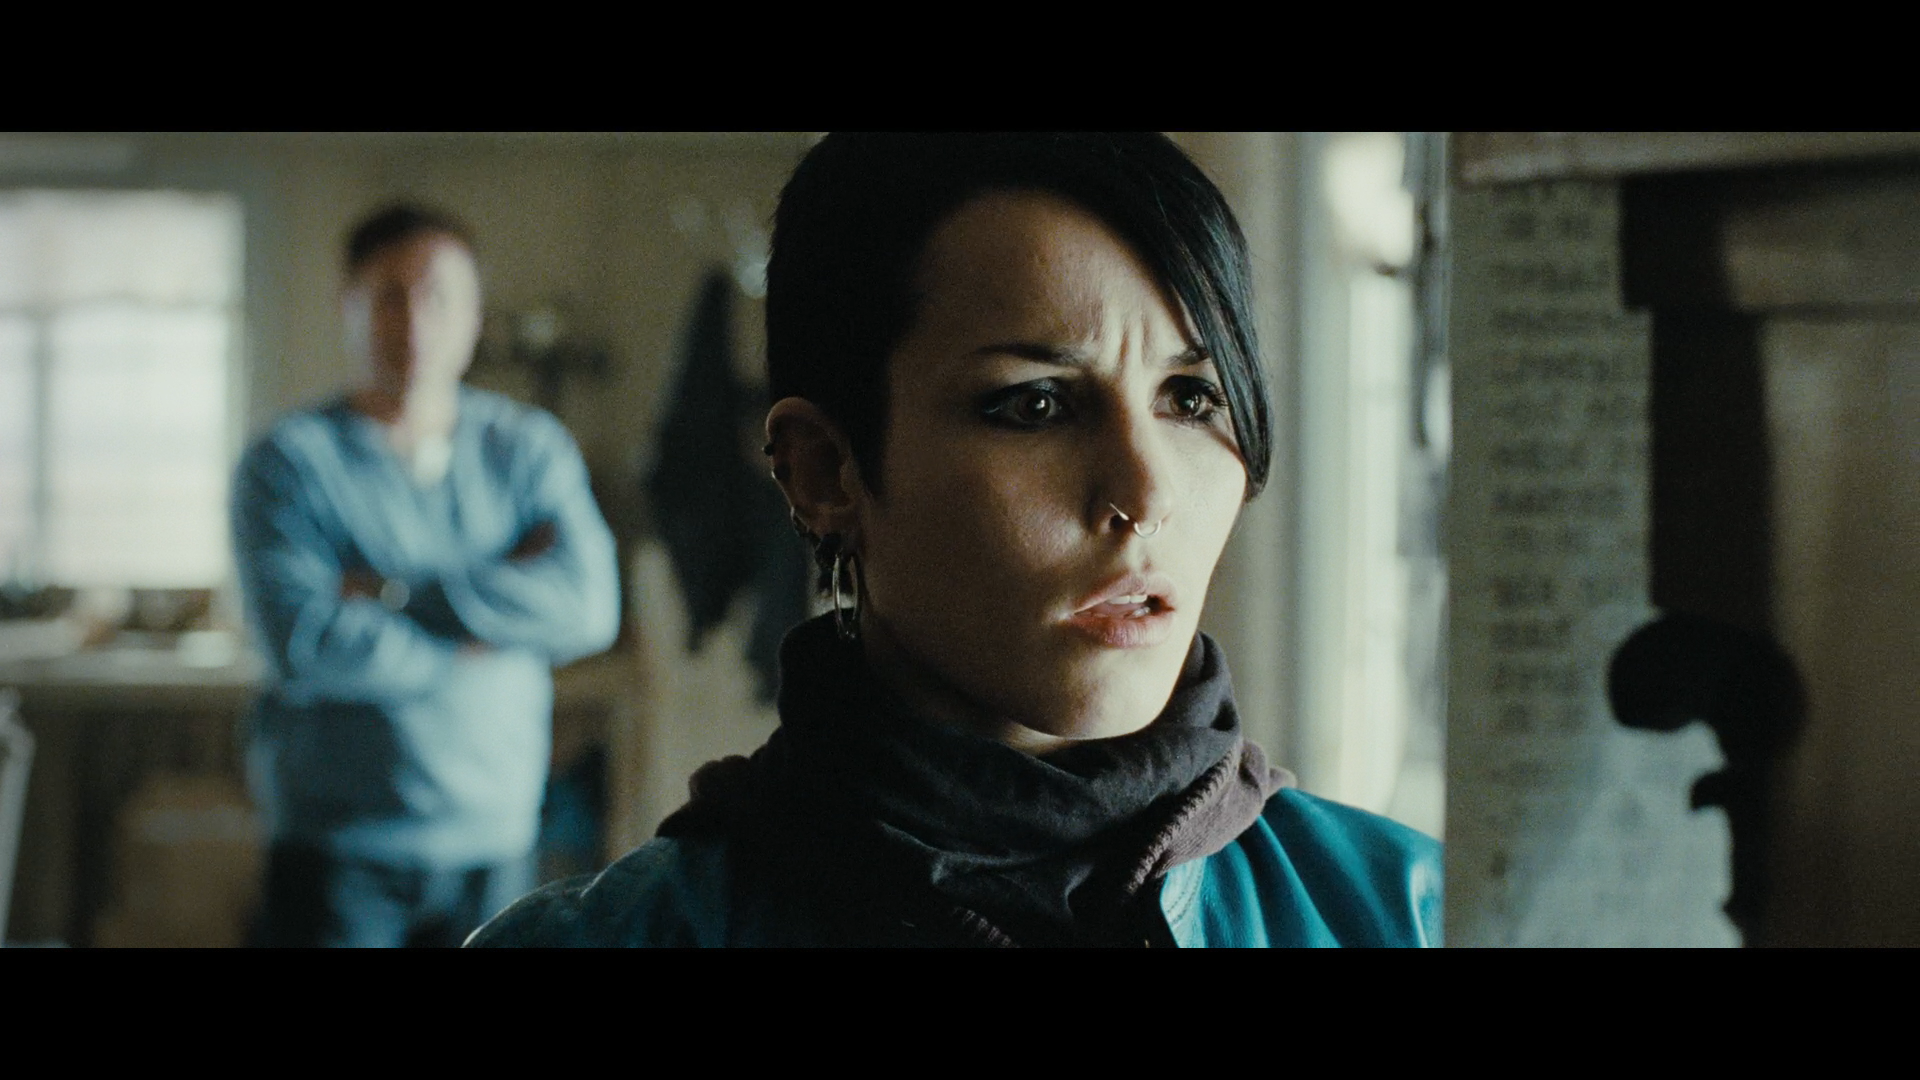 Noomi Rapace Girl With The Dragon Tattoo Wallpaper Sevstar